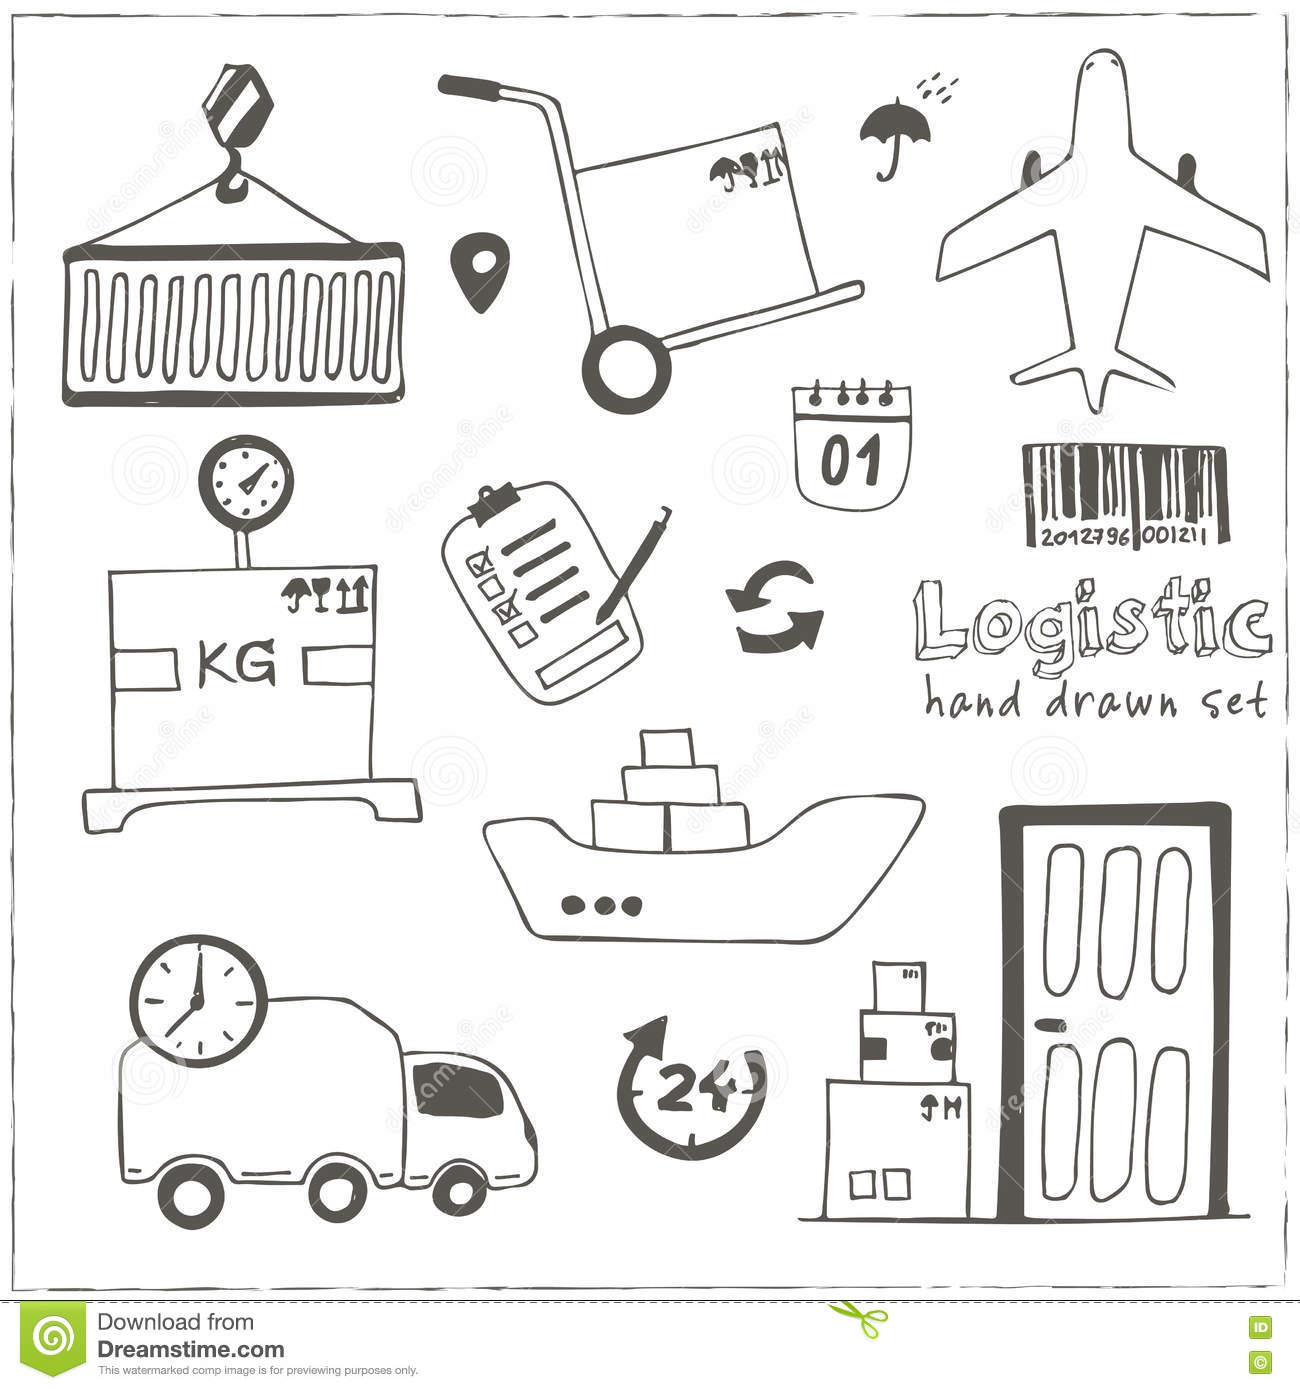 transport hand drawn doodle icons 3 stock photography